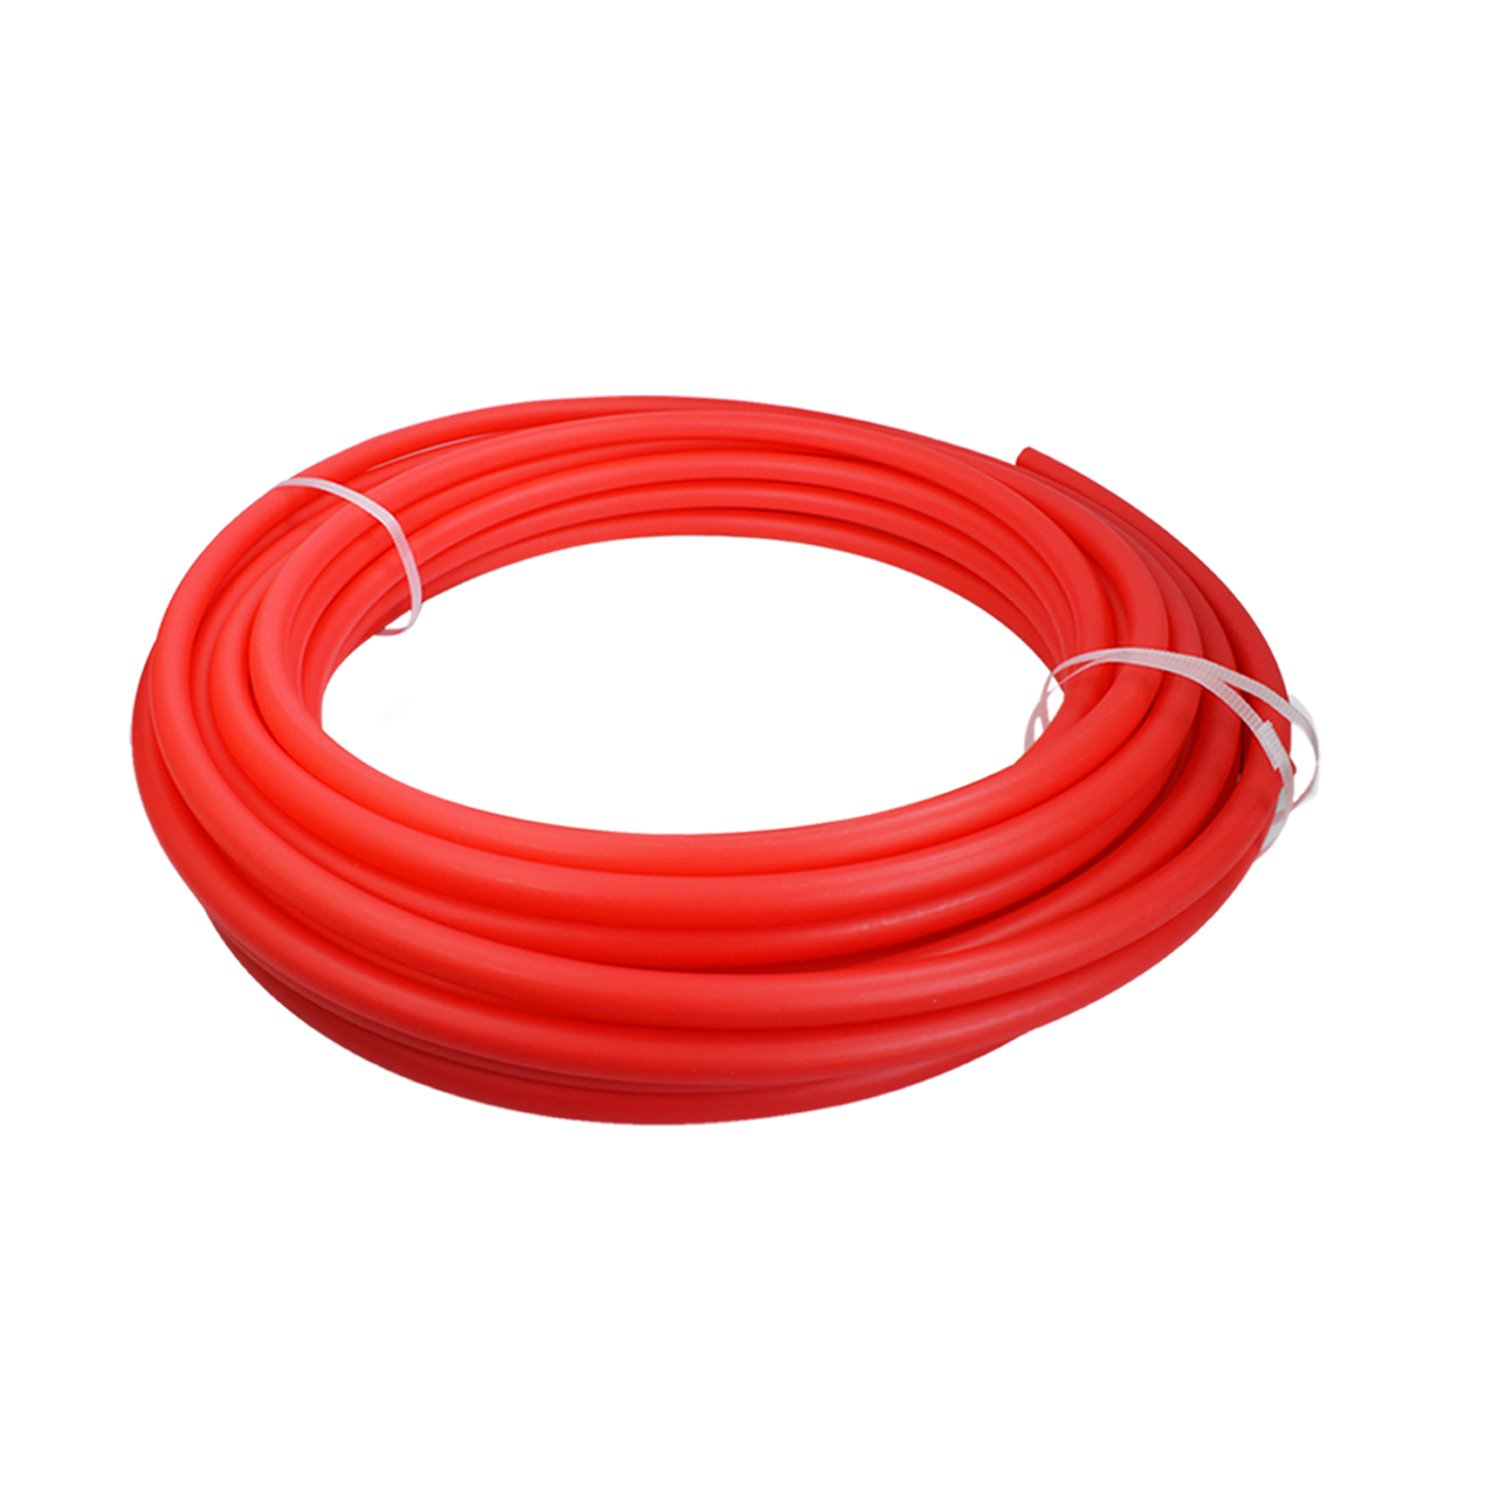 Pexflow PEX Potable Water Tubing - PFW-R34300 3/4 Inch X 300 Feet Tube Coil for Non-Barrier PEX-B Residential & Commercial Hot & Cold Water Plumbing Application (Red)